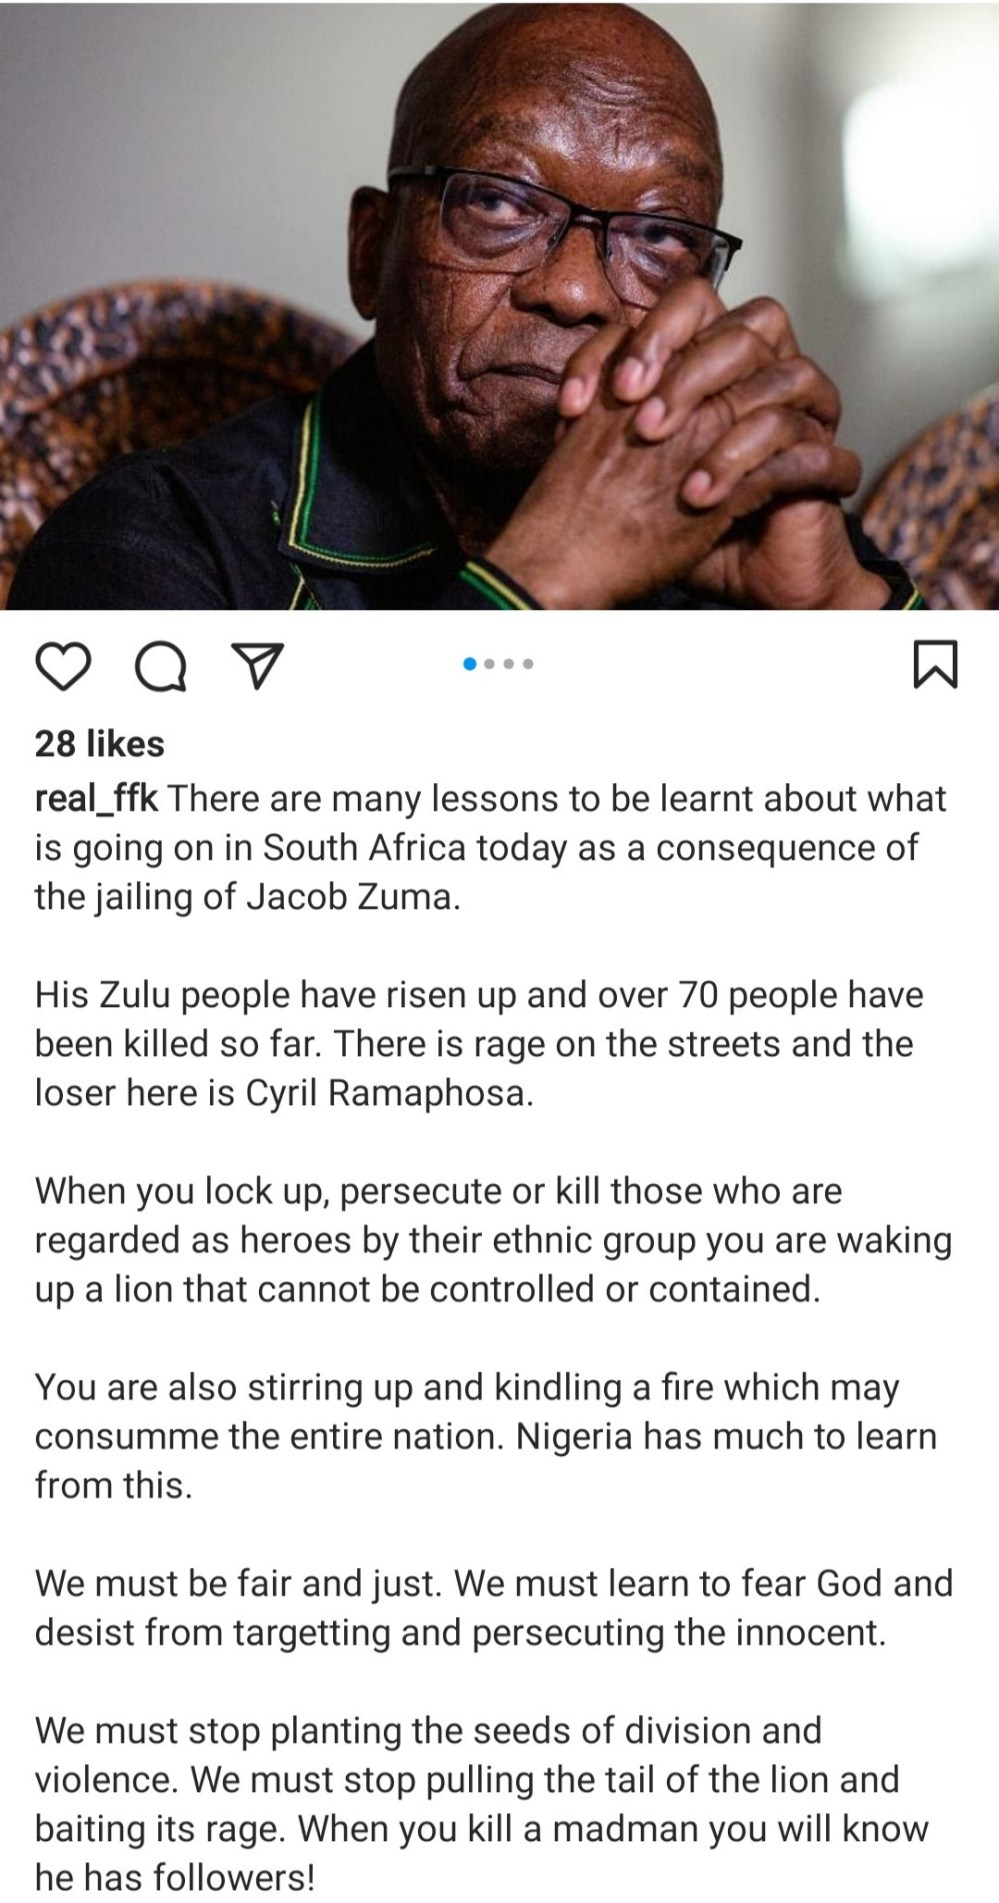 FFK warns that chaos in South Africa over jailing of Jacob Zuma should teach Nigeria what could happen if Nnamdi Kanu and Igboho are persecuted